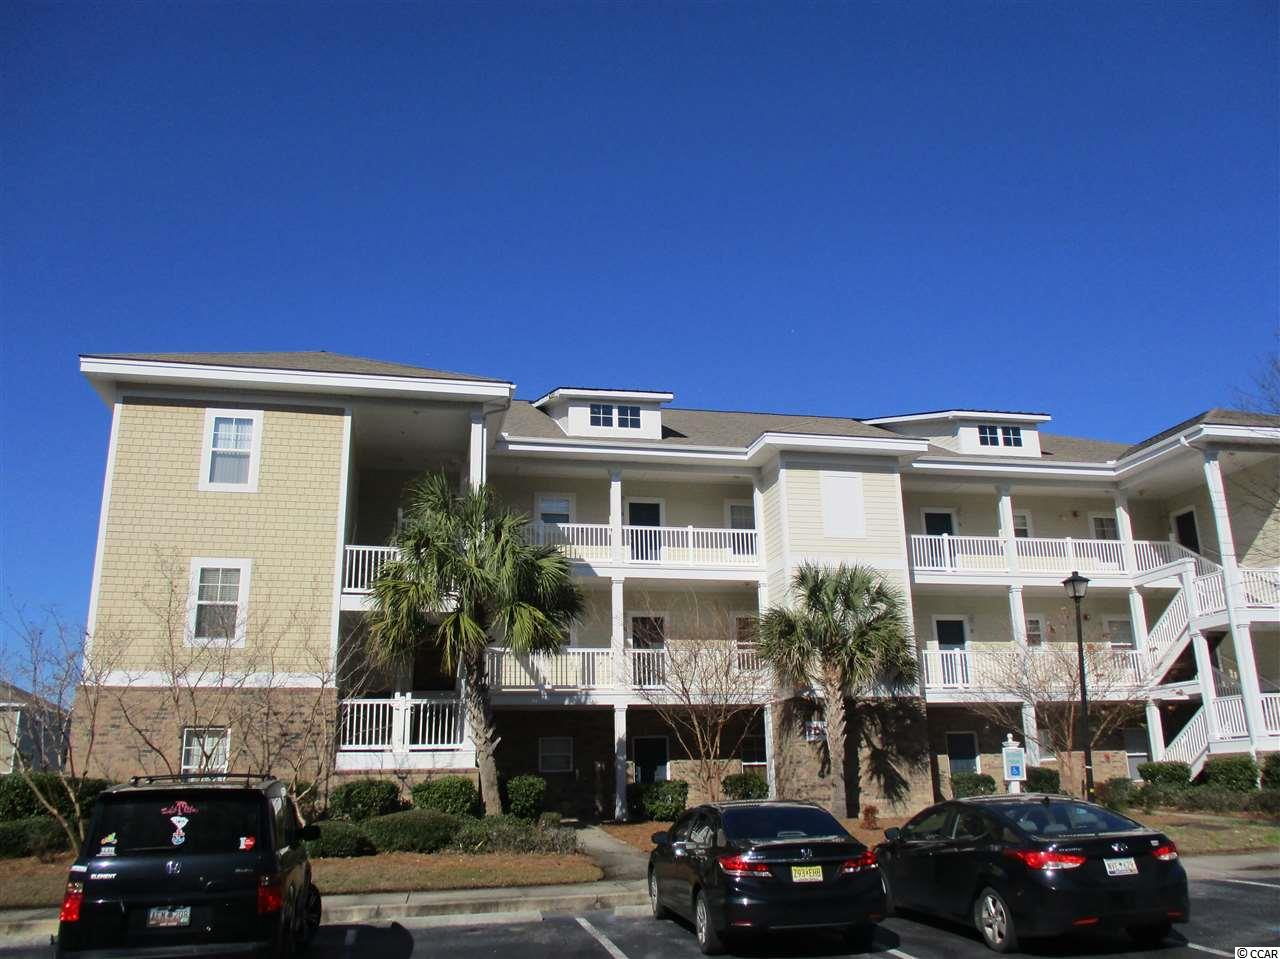 Location and amenities makes this the perfect primary, 2nd home or investment property! Close to Carolina Forest, Conway Hospital, Coastal Carolina University! Beaches, shopping, and everything needed in this fast growing area! Close to downtown historic Conway waterfront area! This is a 1st floor corner unit! Offered Fully furnished! Amazing large lake and sunset views from your covered and screened patio! This unit is light and bright and has a wide open floor plan! Large kitchen with island bar for entertaining! Spacious dining room area! Split plan offers great lake views from the master bedroom! All bedrooms are oversized! Community offers large pool, volleyball, basketball,tennis courts, indoor fitness center! Excellent price for this fully furnished unit with all of these amenities!